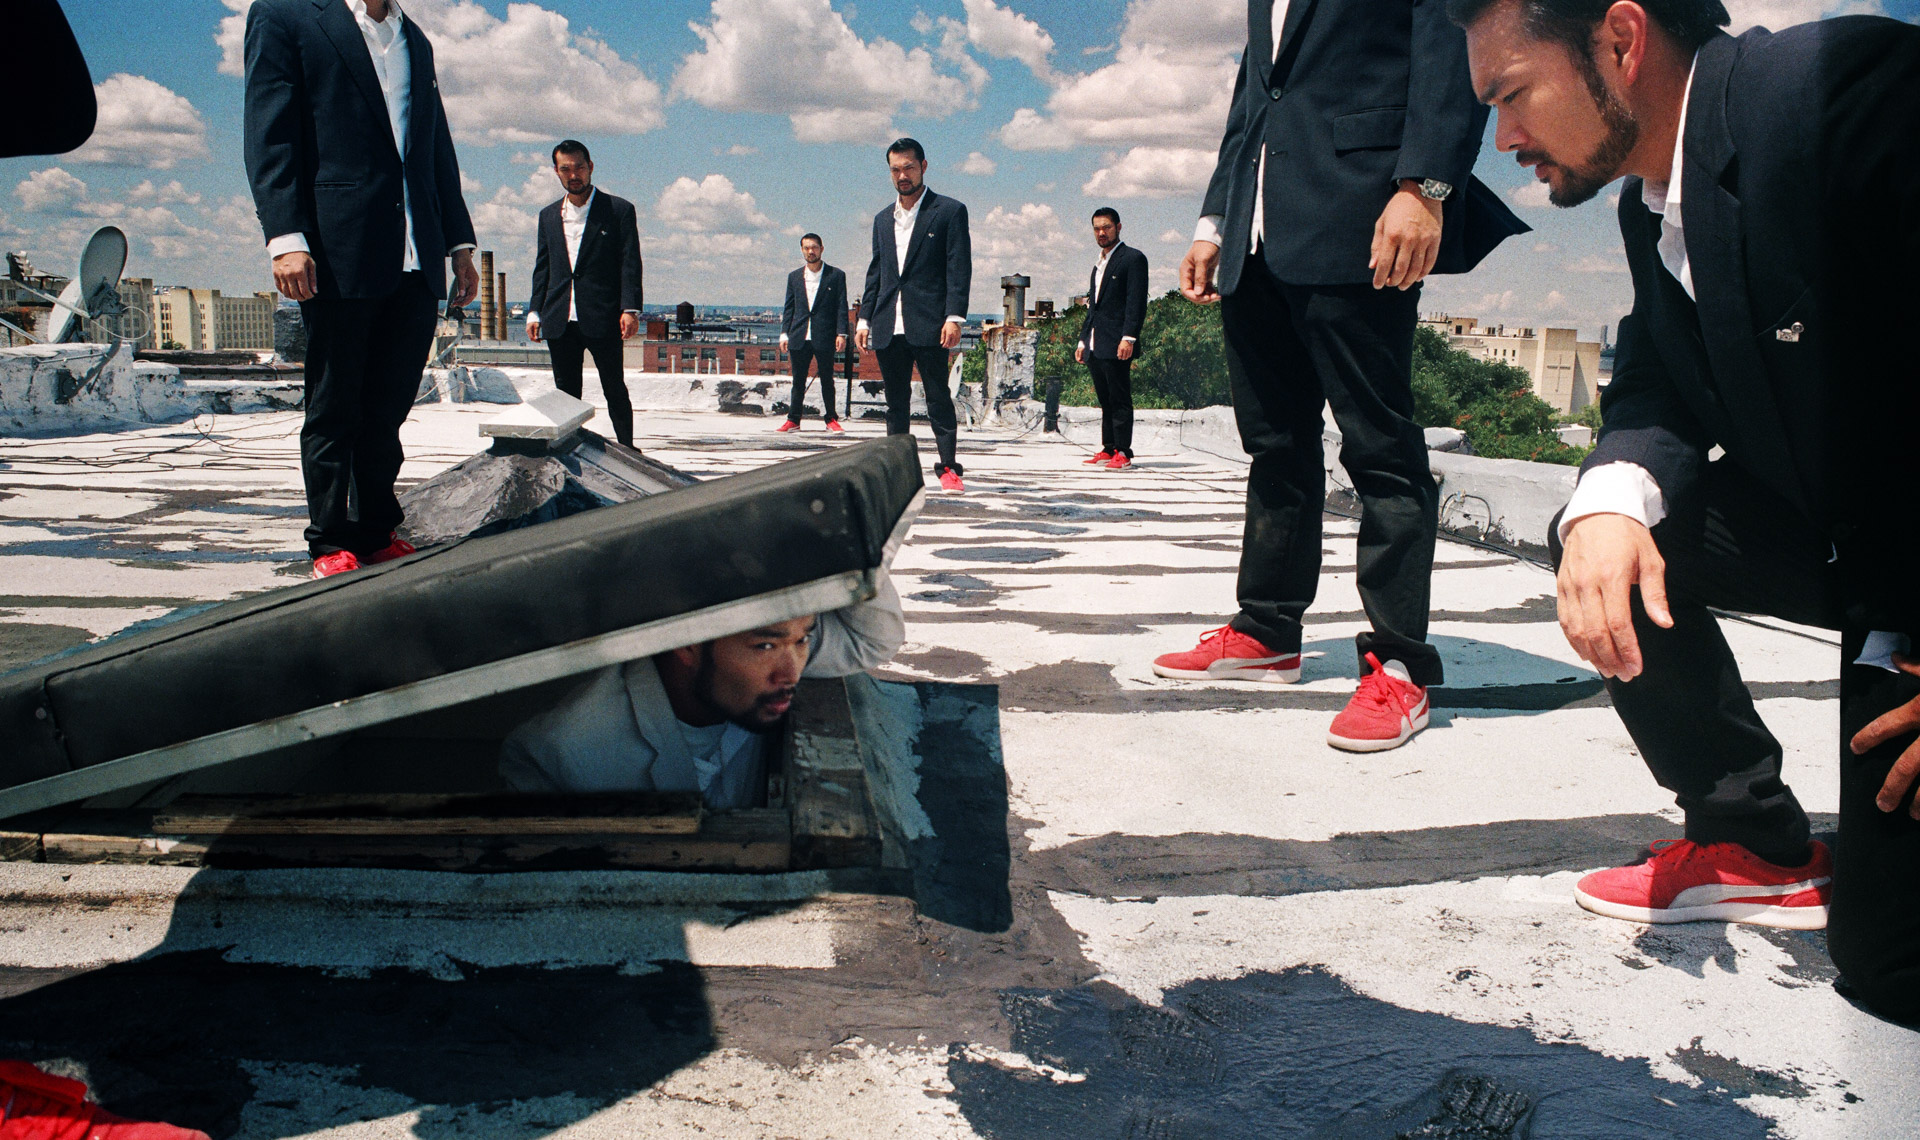 An asian in a white suit looking out from a rooftop manhole. A group of the same asian standing on the roof looking at him.